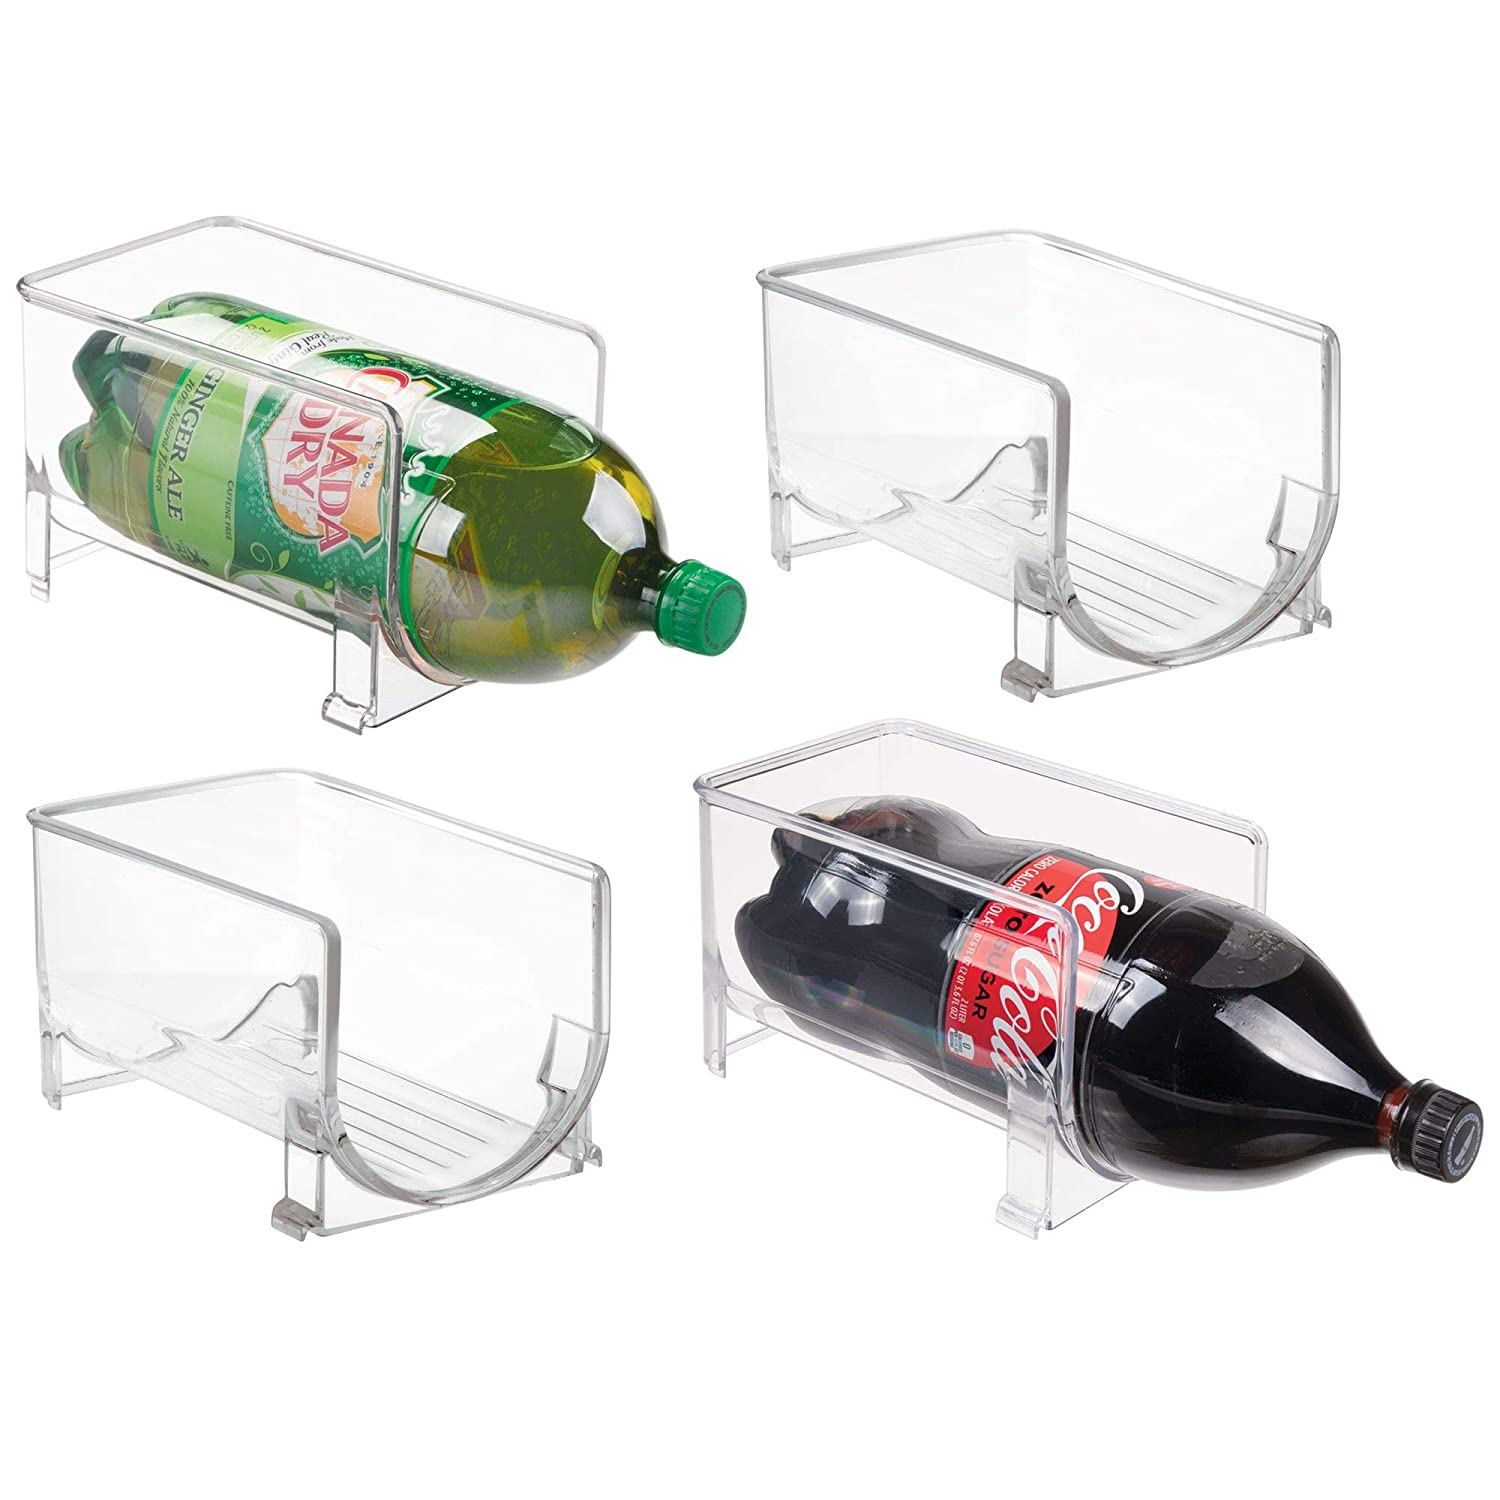 mDesign Large Stackable Kitchen Bin Storage Organizer Rack for Pop/Soda Bottles for Refrigerator, Pantry, Countertops and Cabinets - Holds 2-Liter Bottles - BPA Free, Pack of 2, Clear MetroDecor